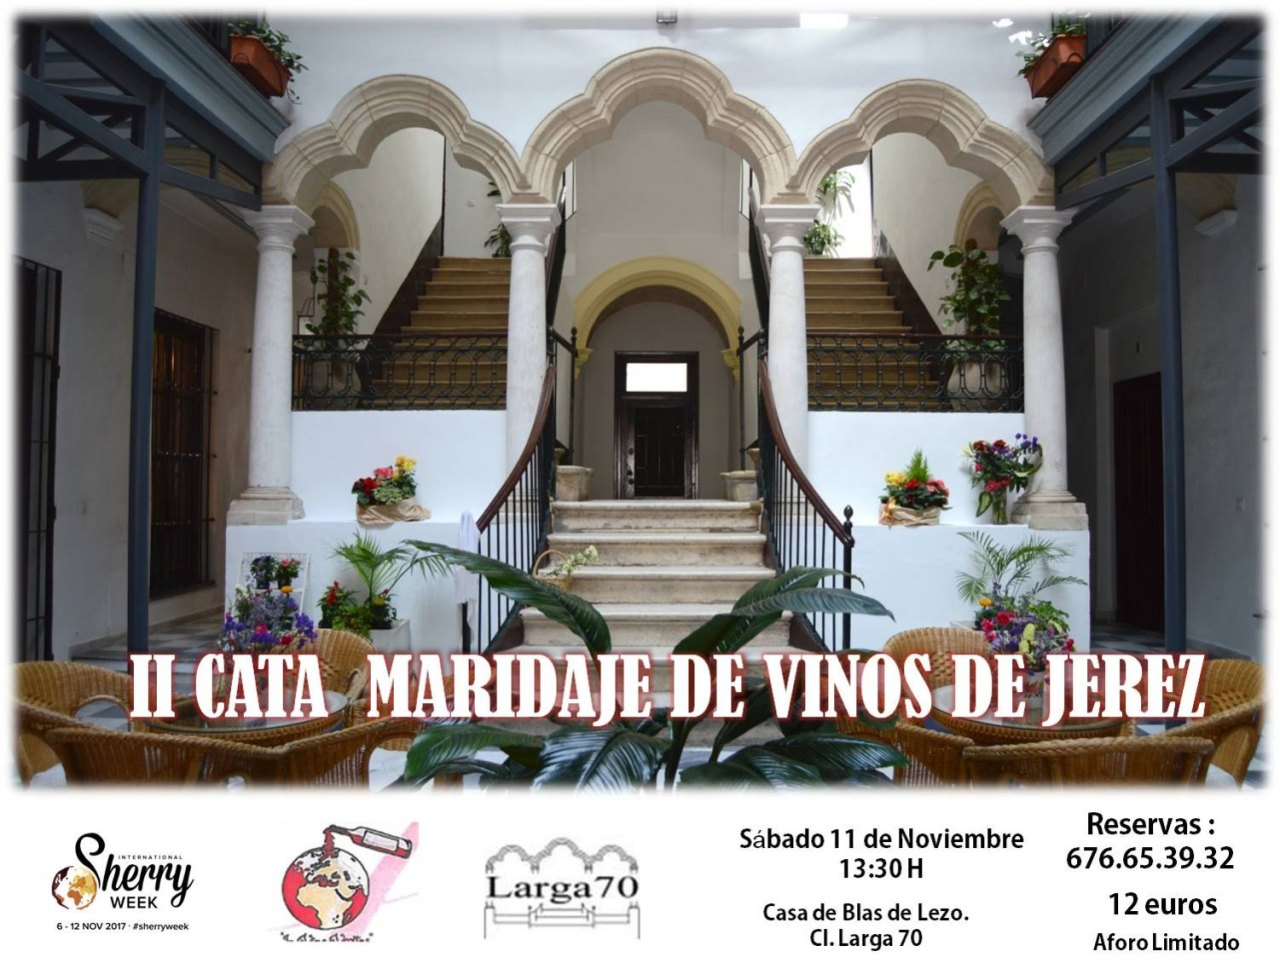 Cata vinos de jerez en Larga 70, Puerto de Santa María, International Sherry Week